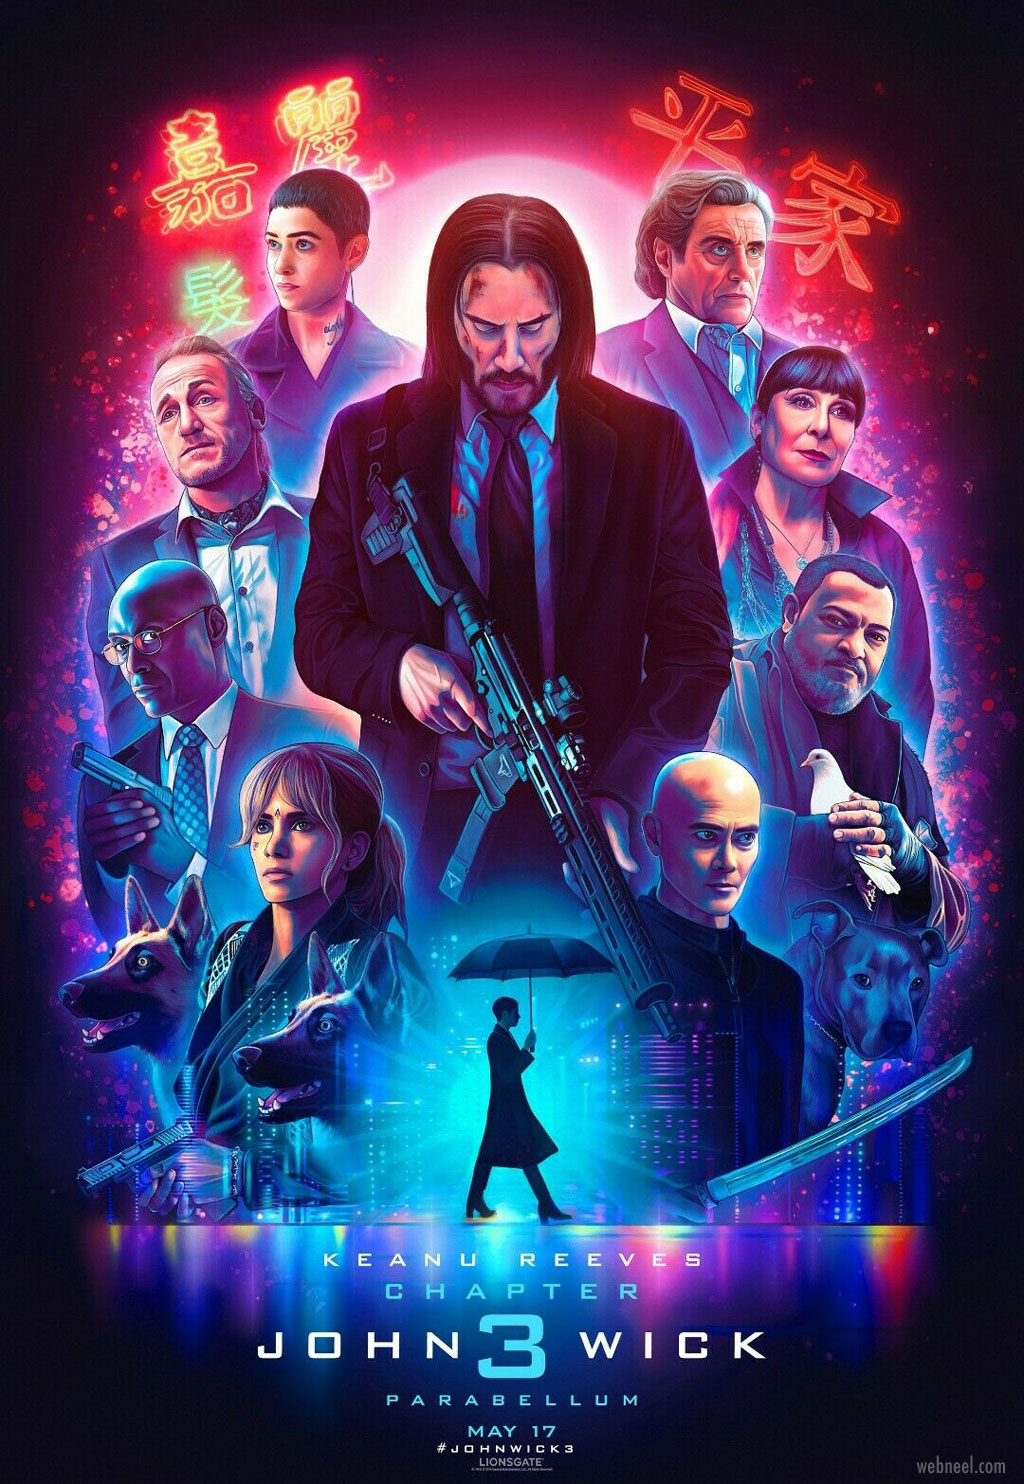 movie poster design john wick neon pop